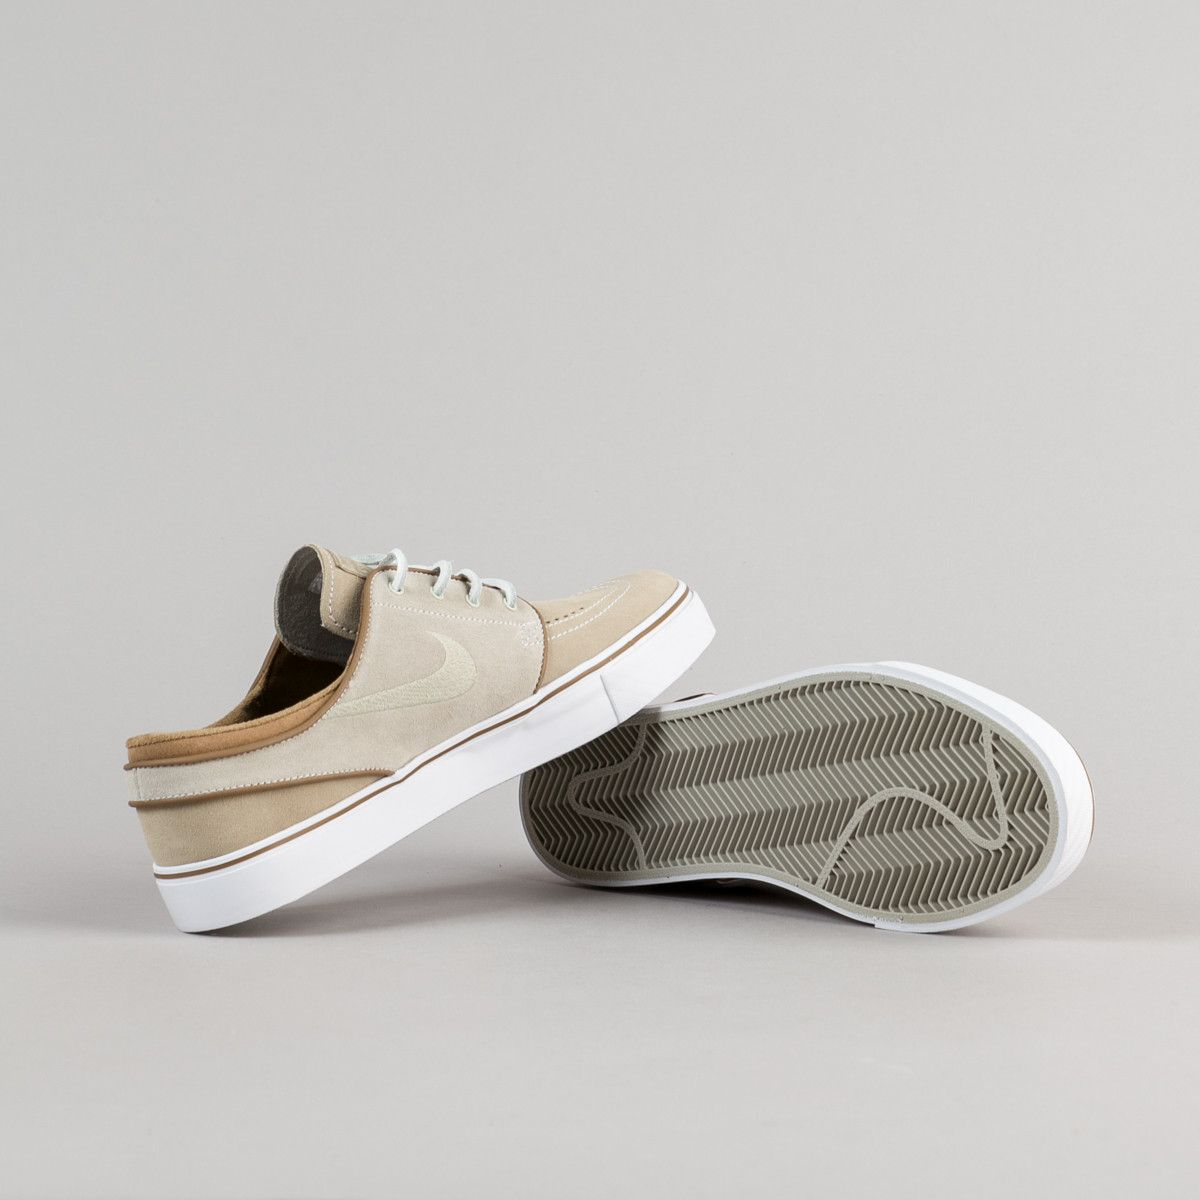 Shop the Nike SB Stefan Janoski OG Shoes in Reed and Reed and Stone - Rocky  Tan at Flatspot, premium skateboard store since